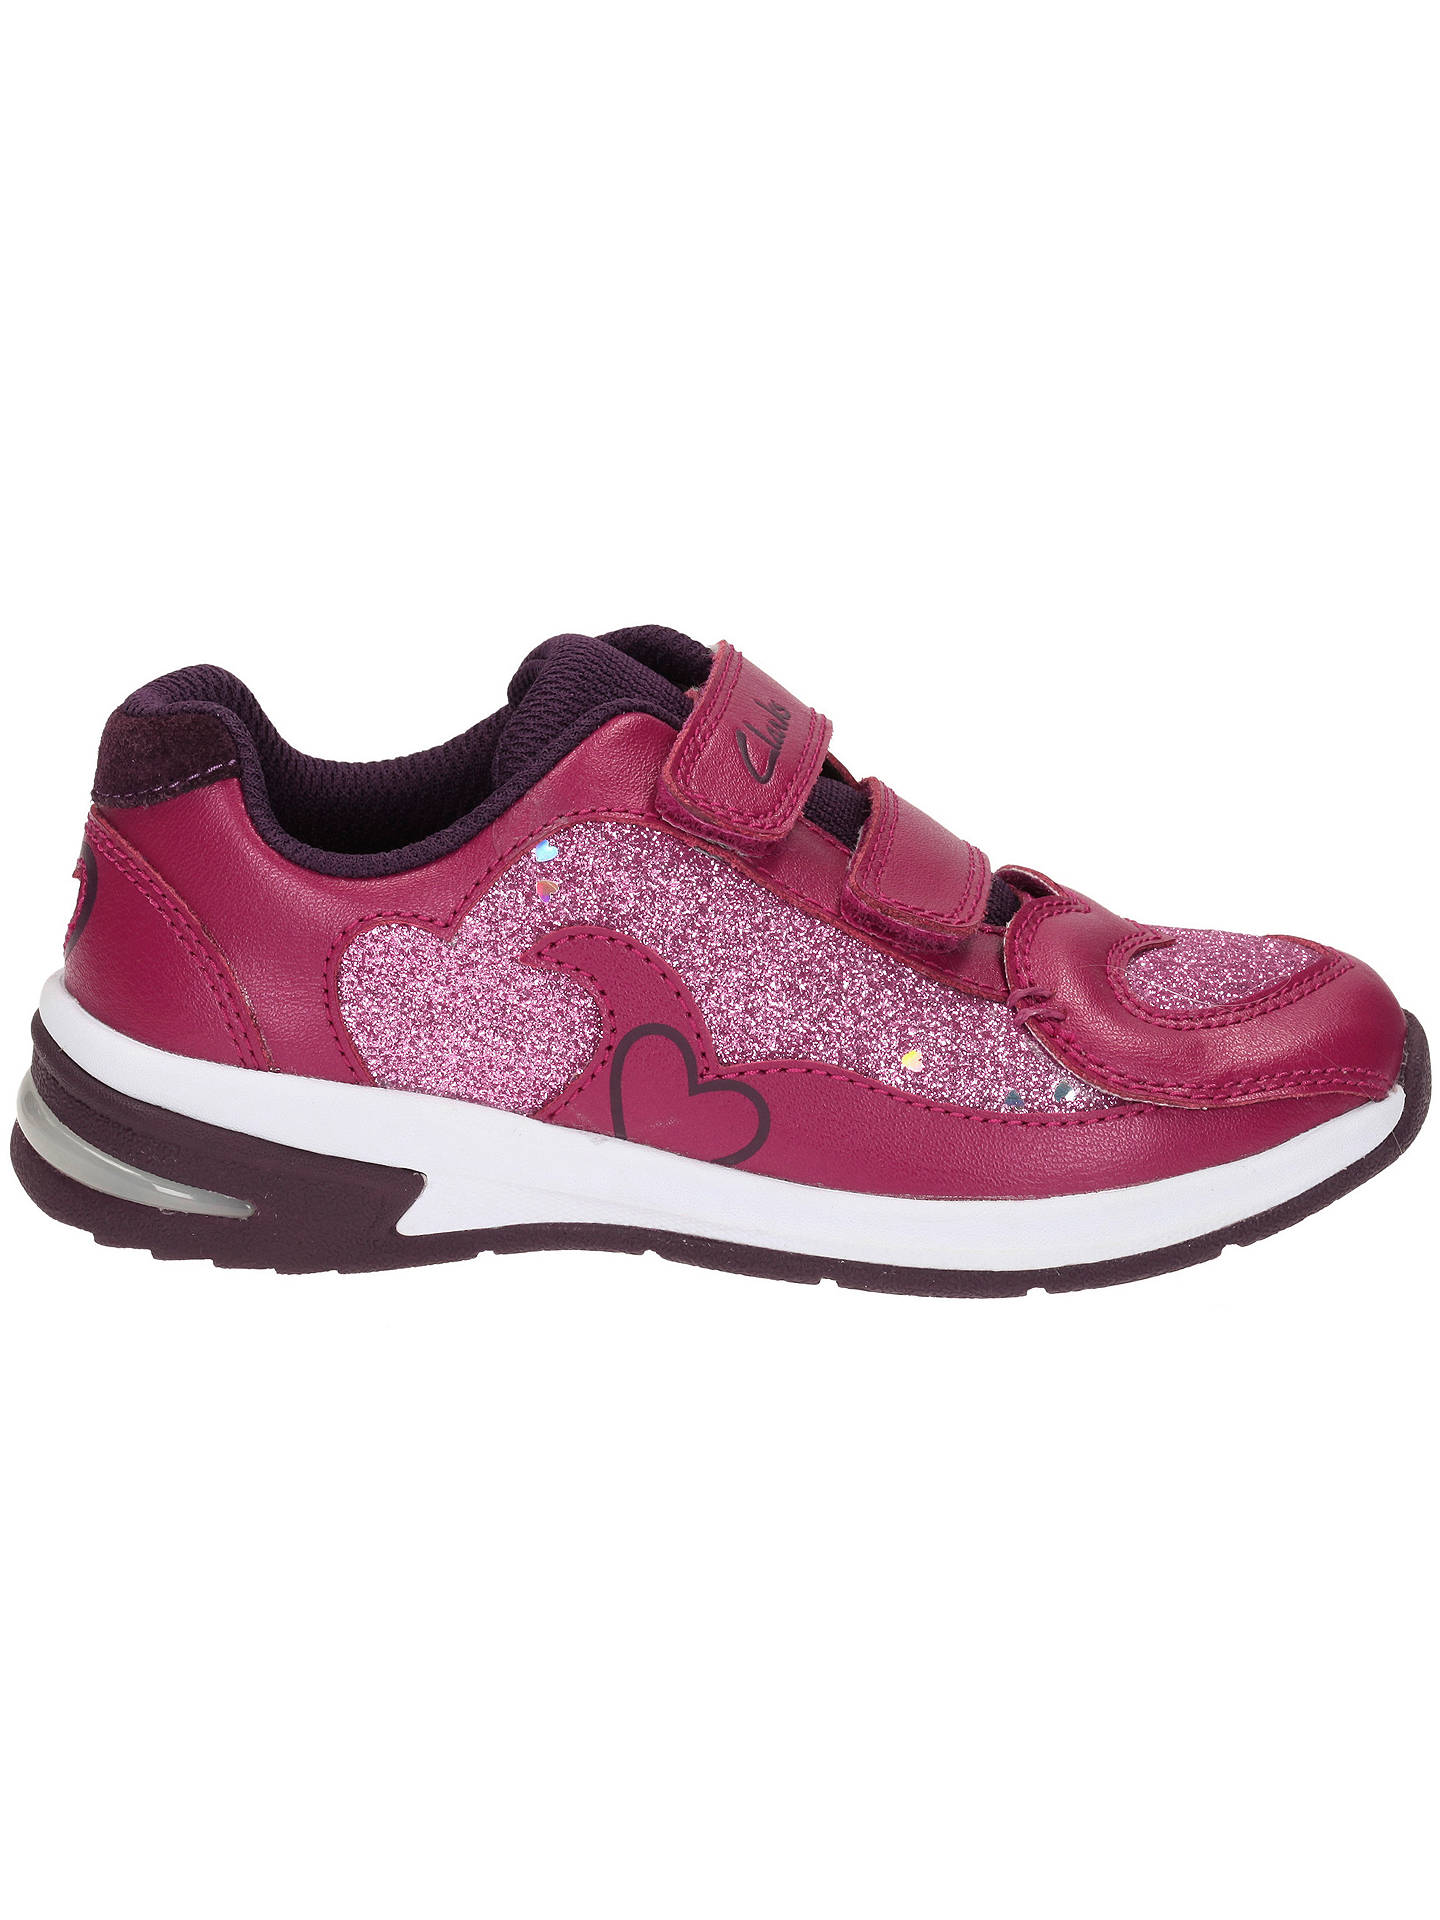 PIPER CHAT INFANTS GIRLS CLARKS GLITTER LIGHTS RIPTAPE SPORTS TRAINERS SHOES